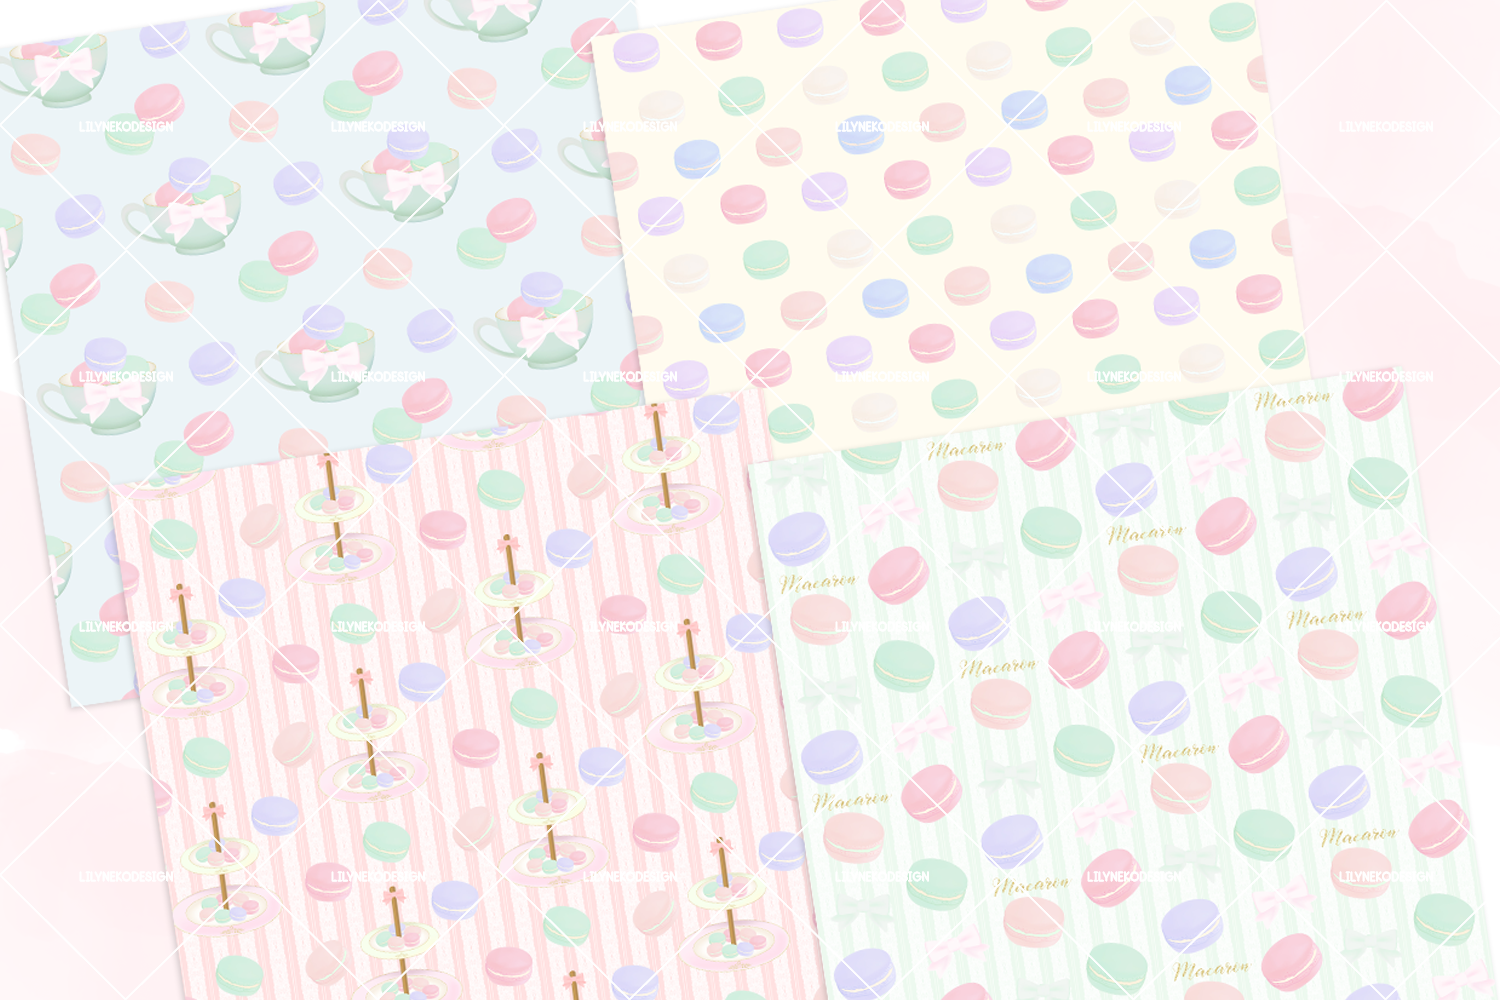 Macaron Afternoon Tea party Pattern Digital Papers example image 4